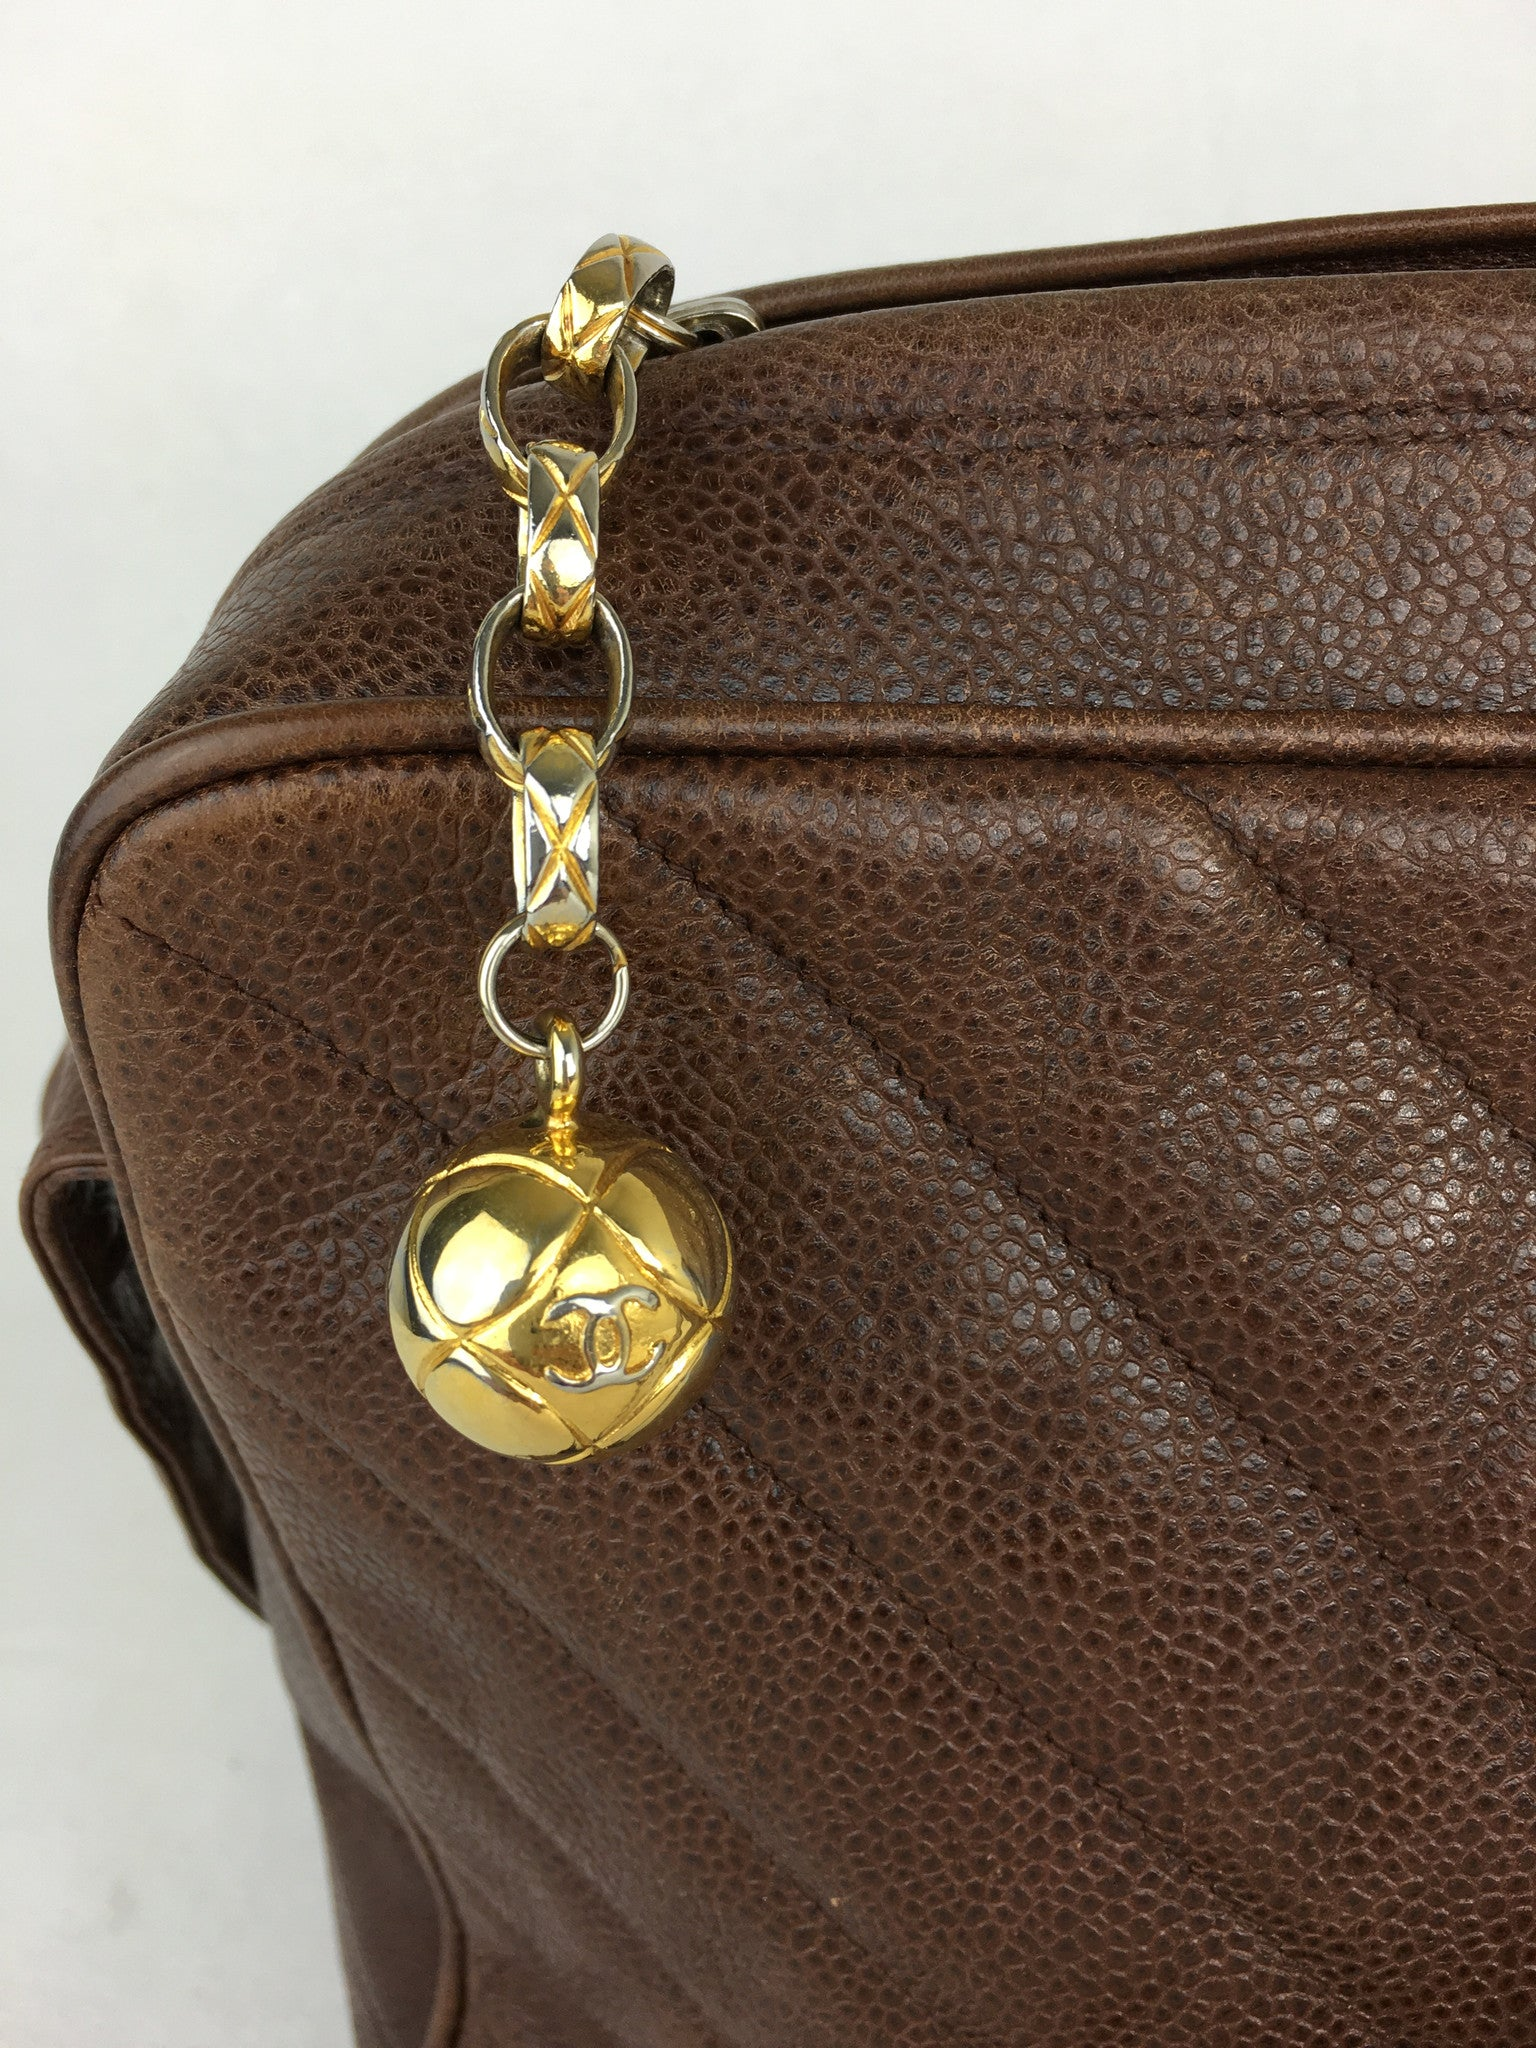 CHANEL Brown Caviar Leather Crossbody